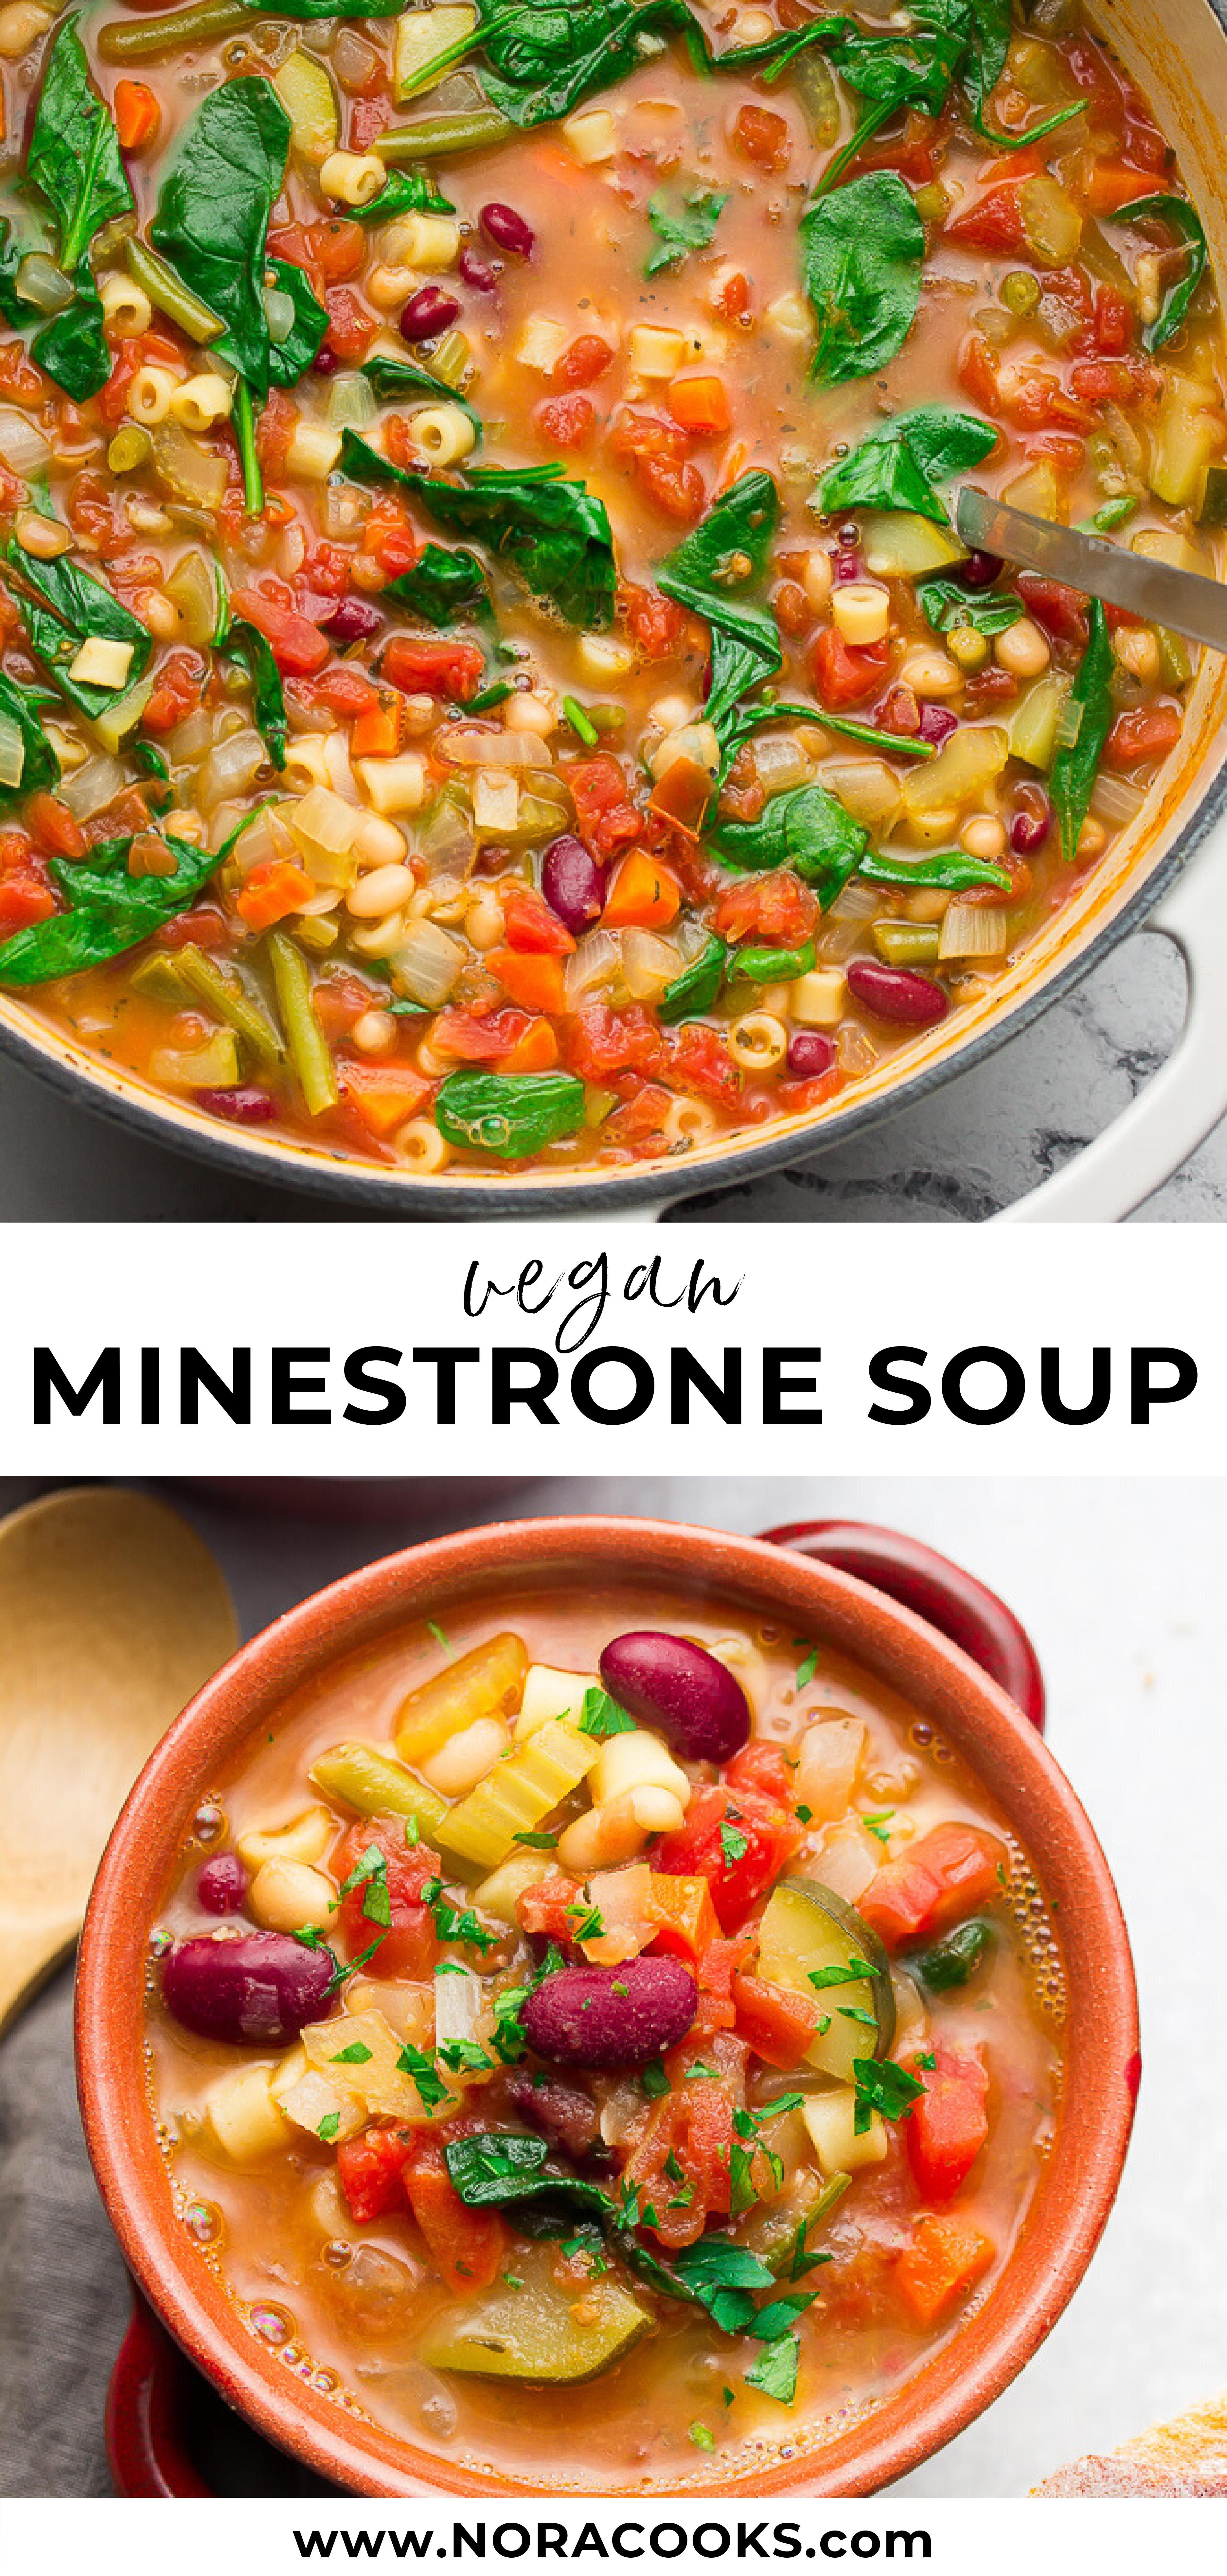 Better Than Olive Garden Vegan Minestrone Soup Sure To Warm You Up On Cold Nights Vegan Plantba In 2020 Vegan Minestrone Soup Hearty Vegetable Soup Minestrone Soup